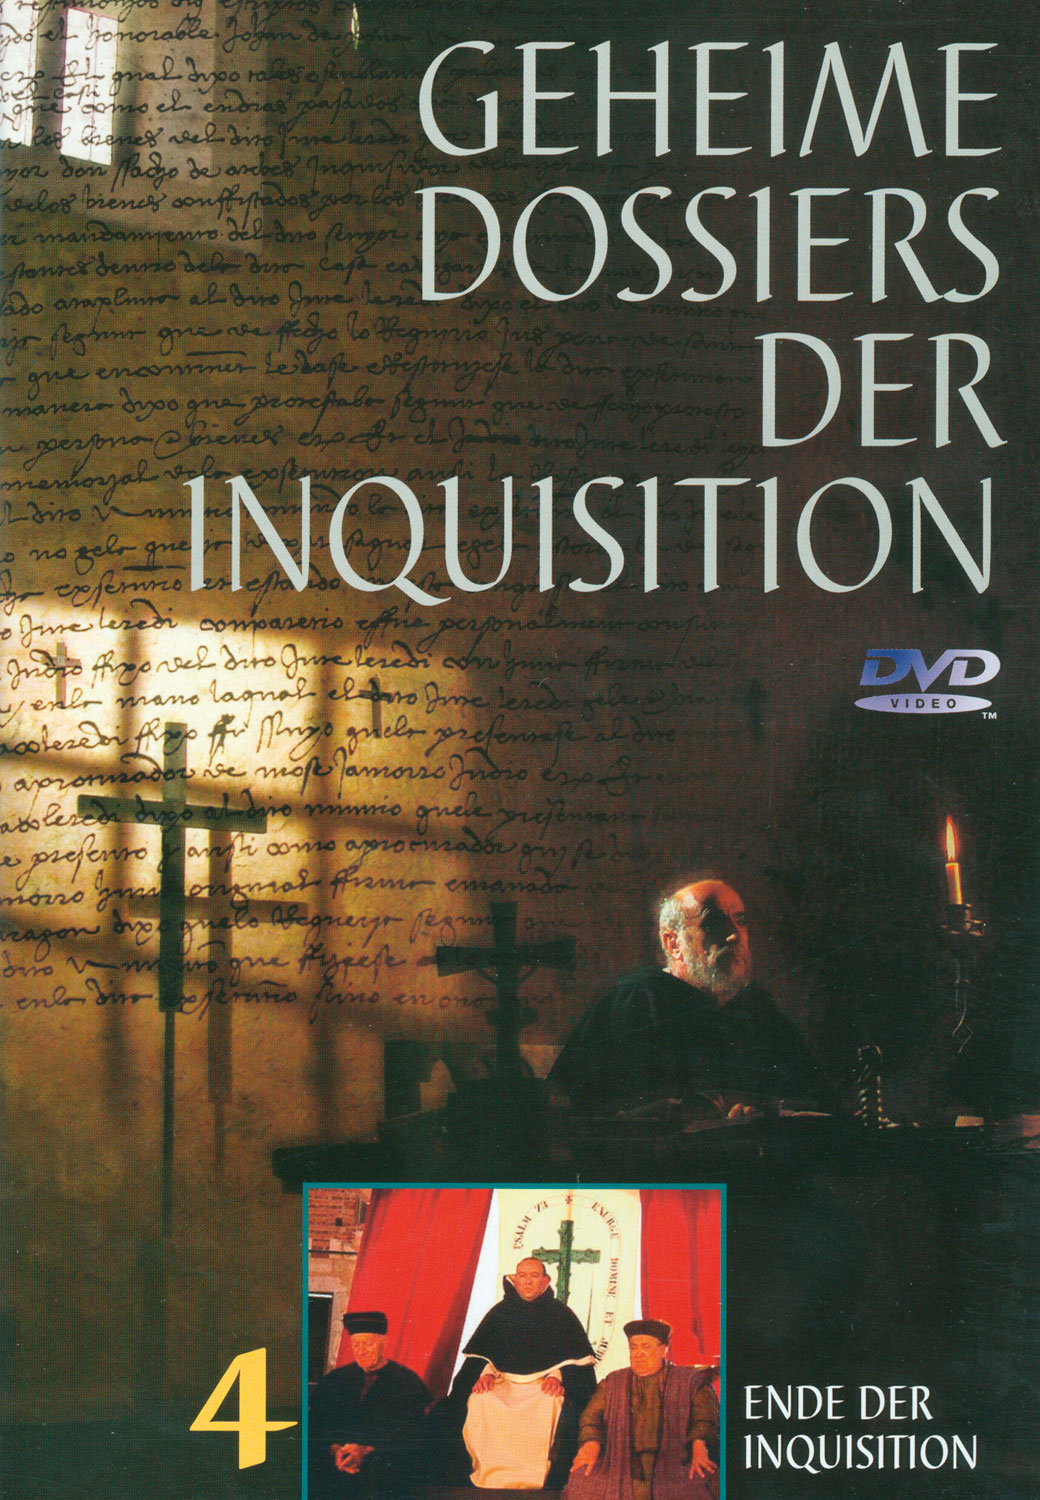 Geheime Dossiers der Inquisition - Teil 4: Ende der Inquisition